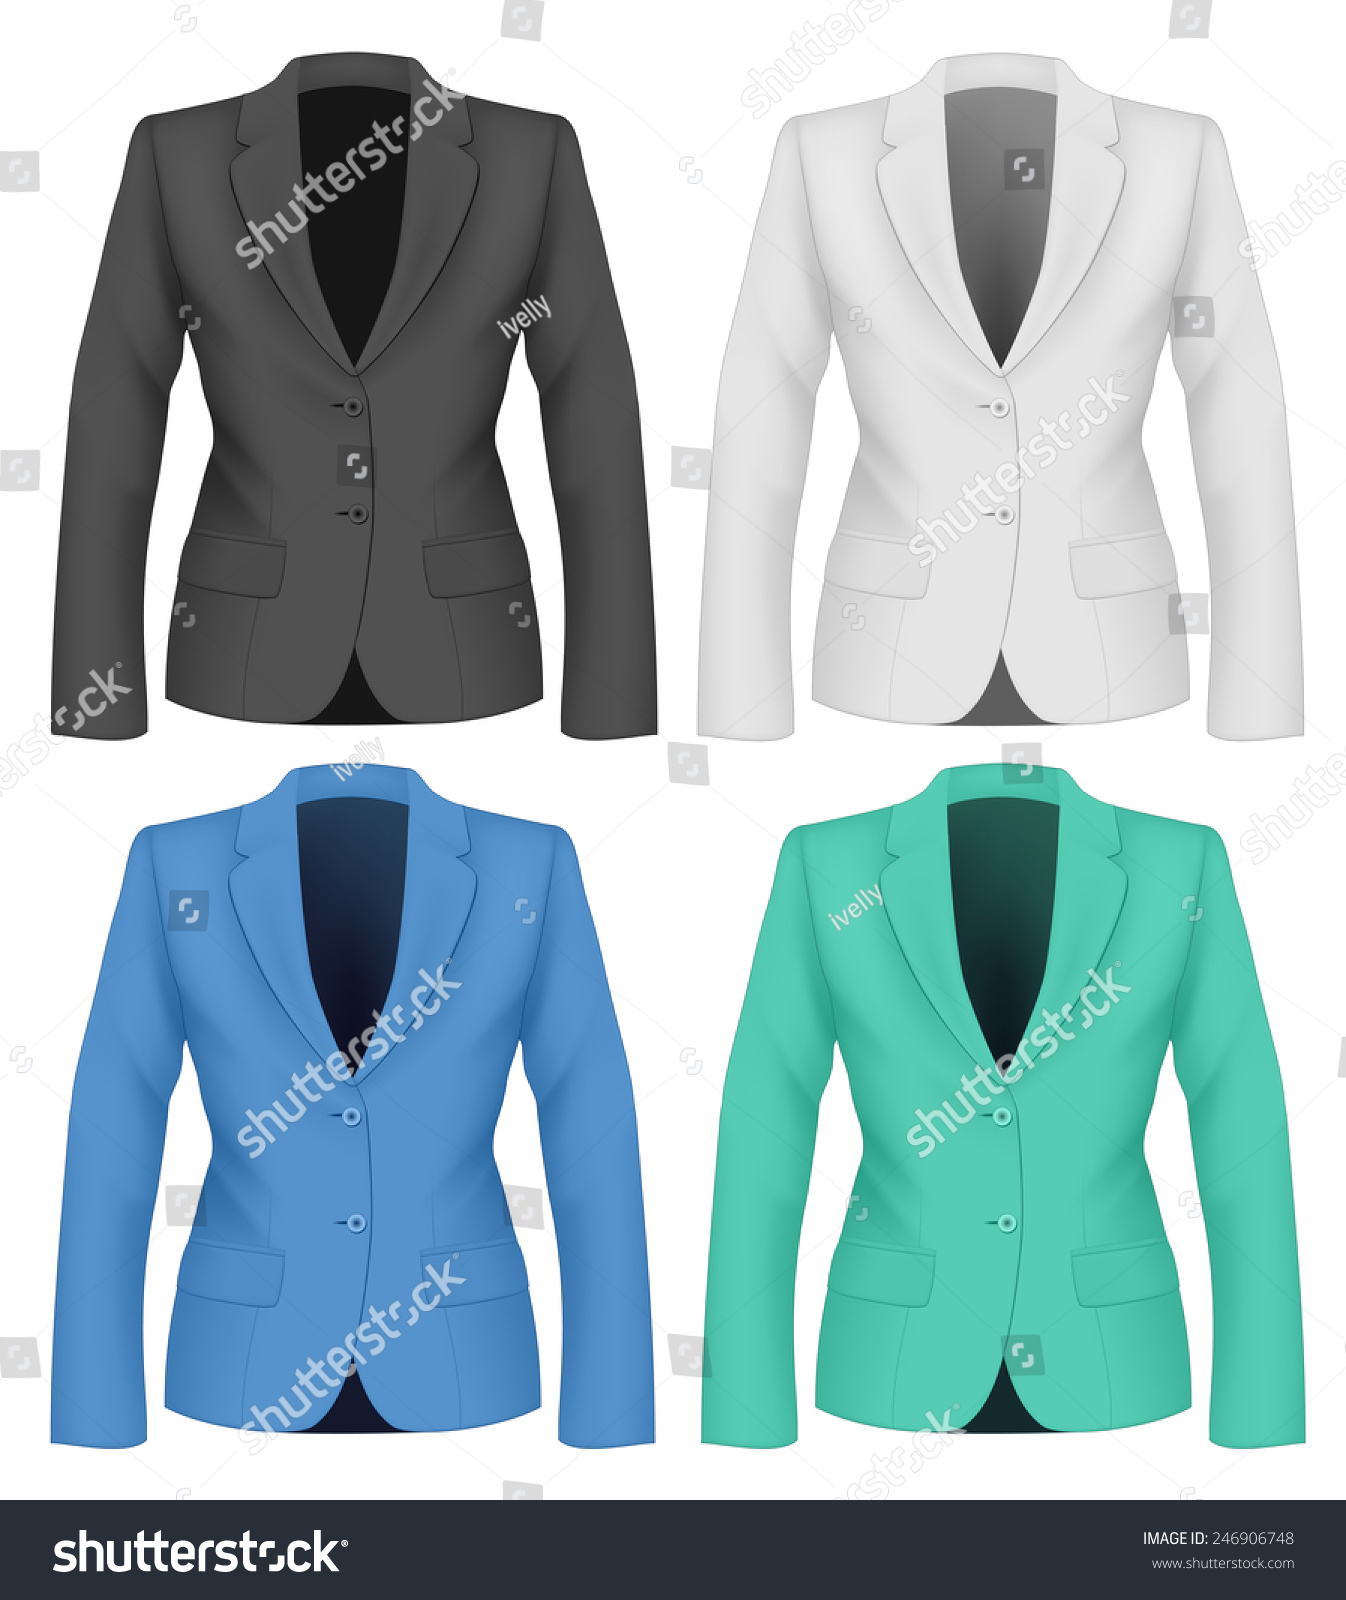 Royalty-free Ladies suit jacket for business women.… #246906748 ...